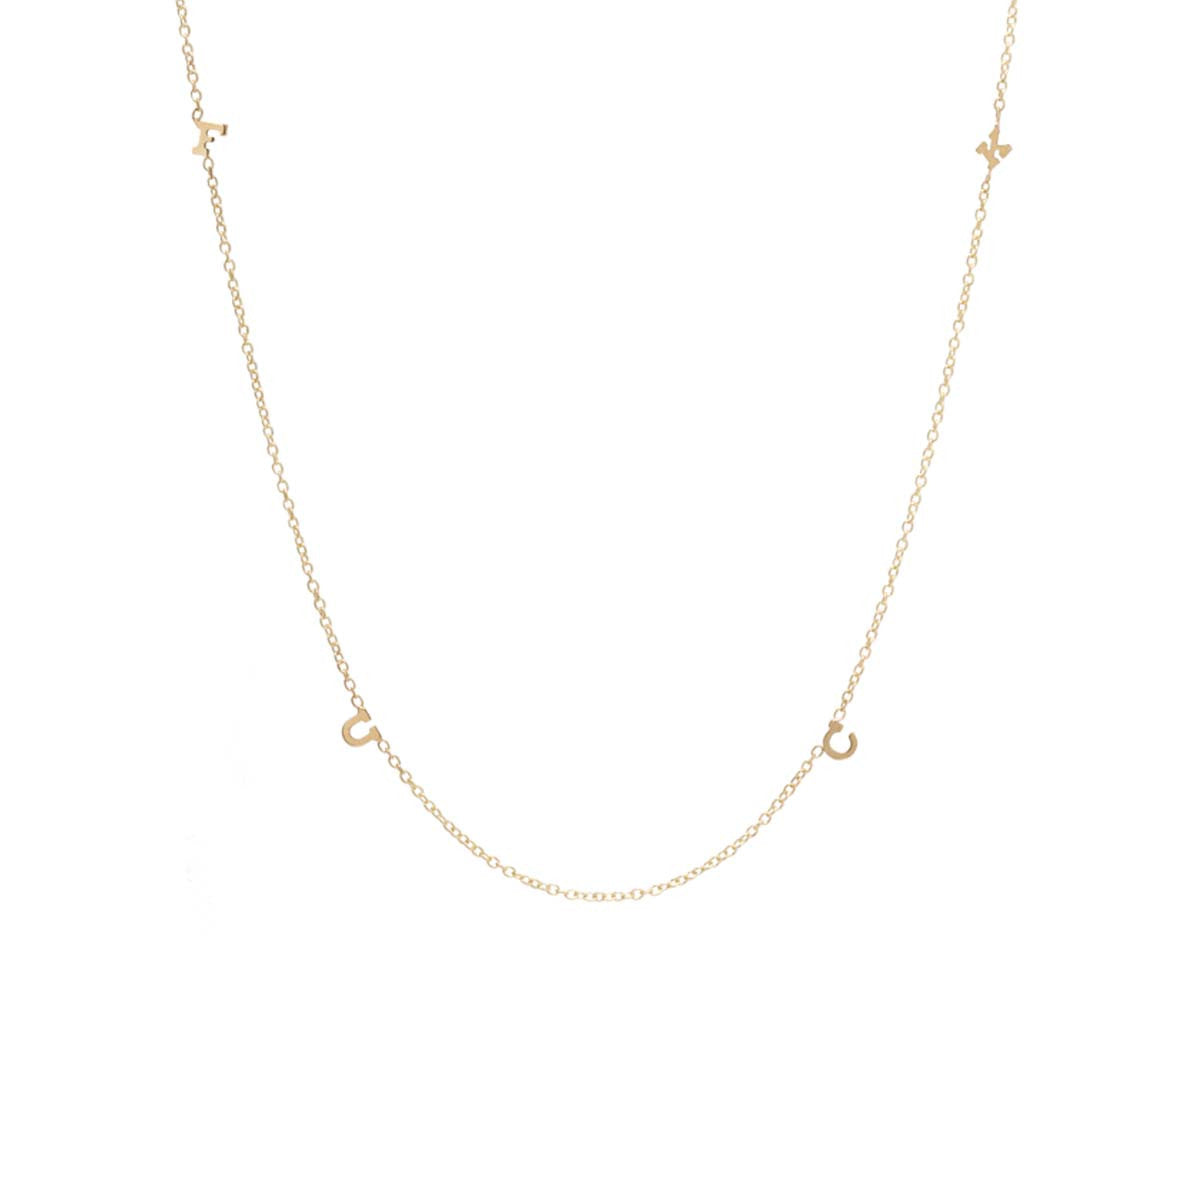 Zoë Chicco 14kt Yellow Gold Itty Bitty Spread Out FUCK Necklace